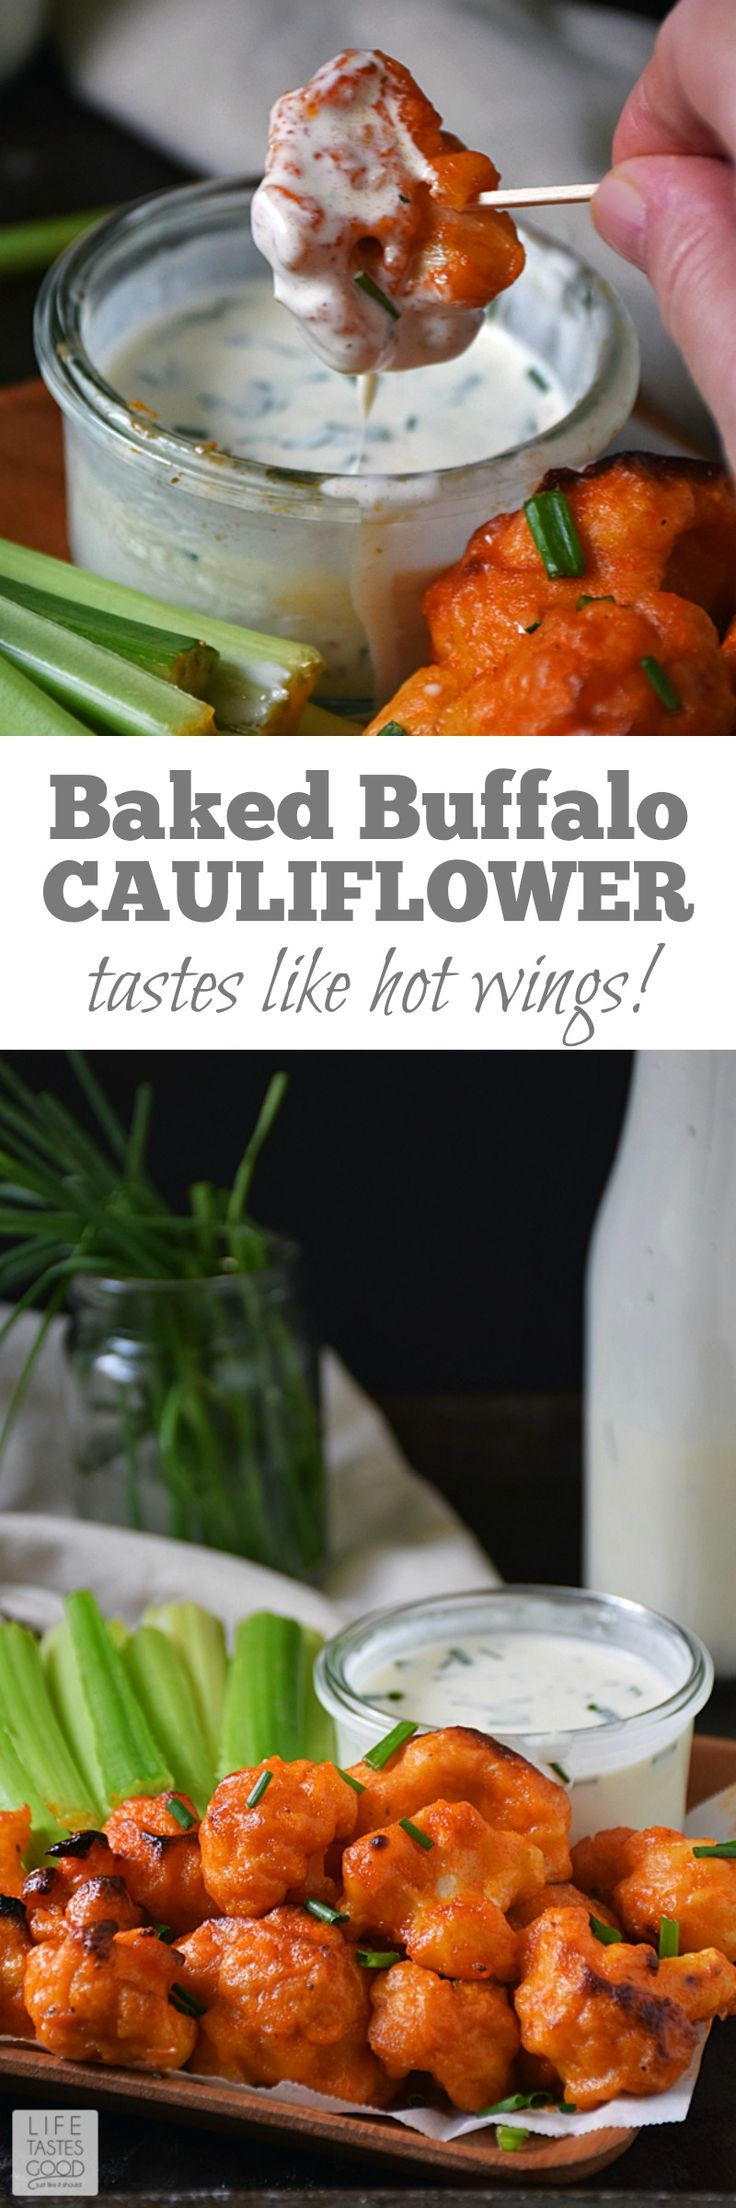 Healthy Wings --> Baked Buffalo Cauliflower Bites #appetizer #gameday